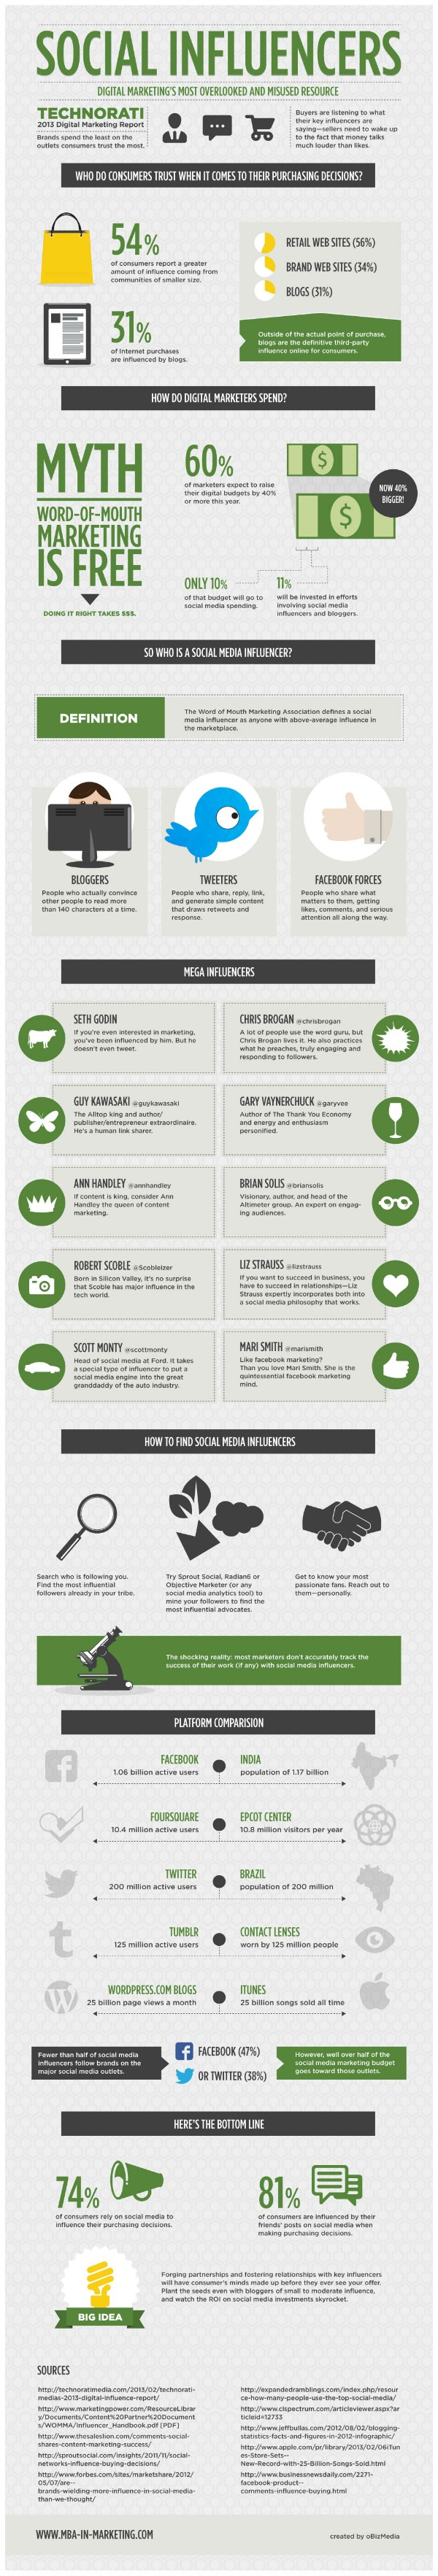 social-influencers-infographic